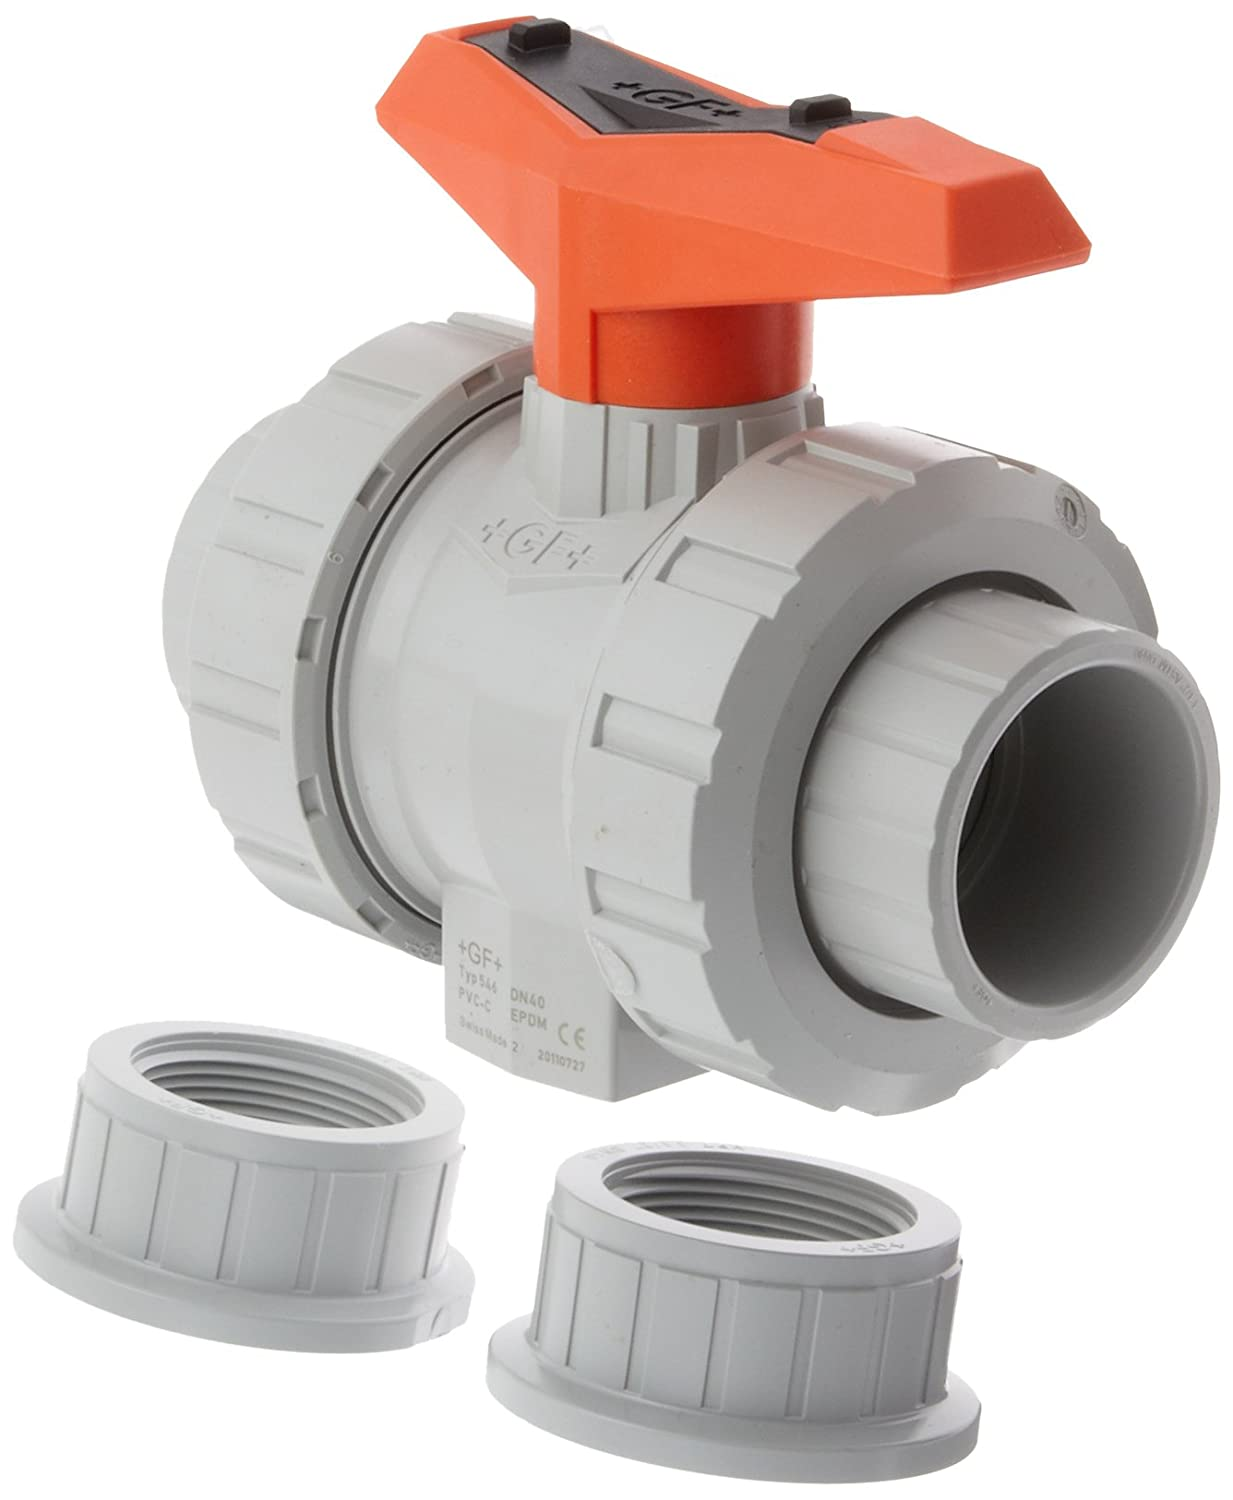 Gf piping systems cpvc true union ball valve with mounting